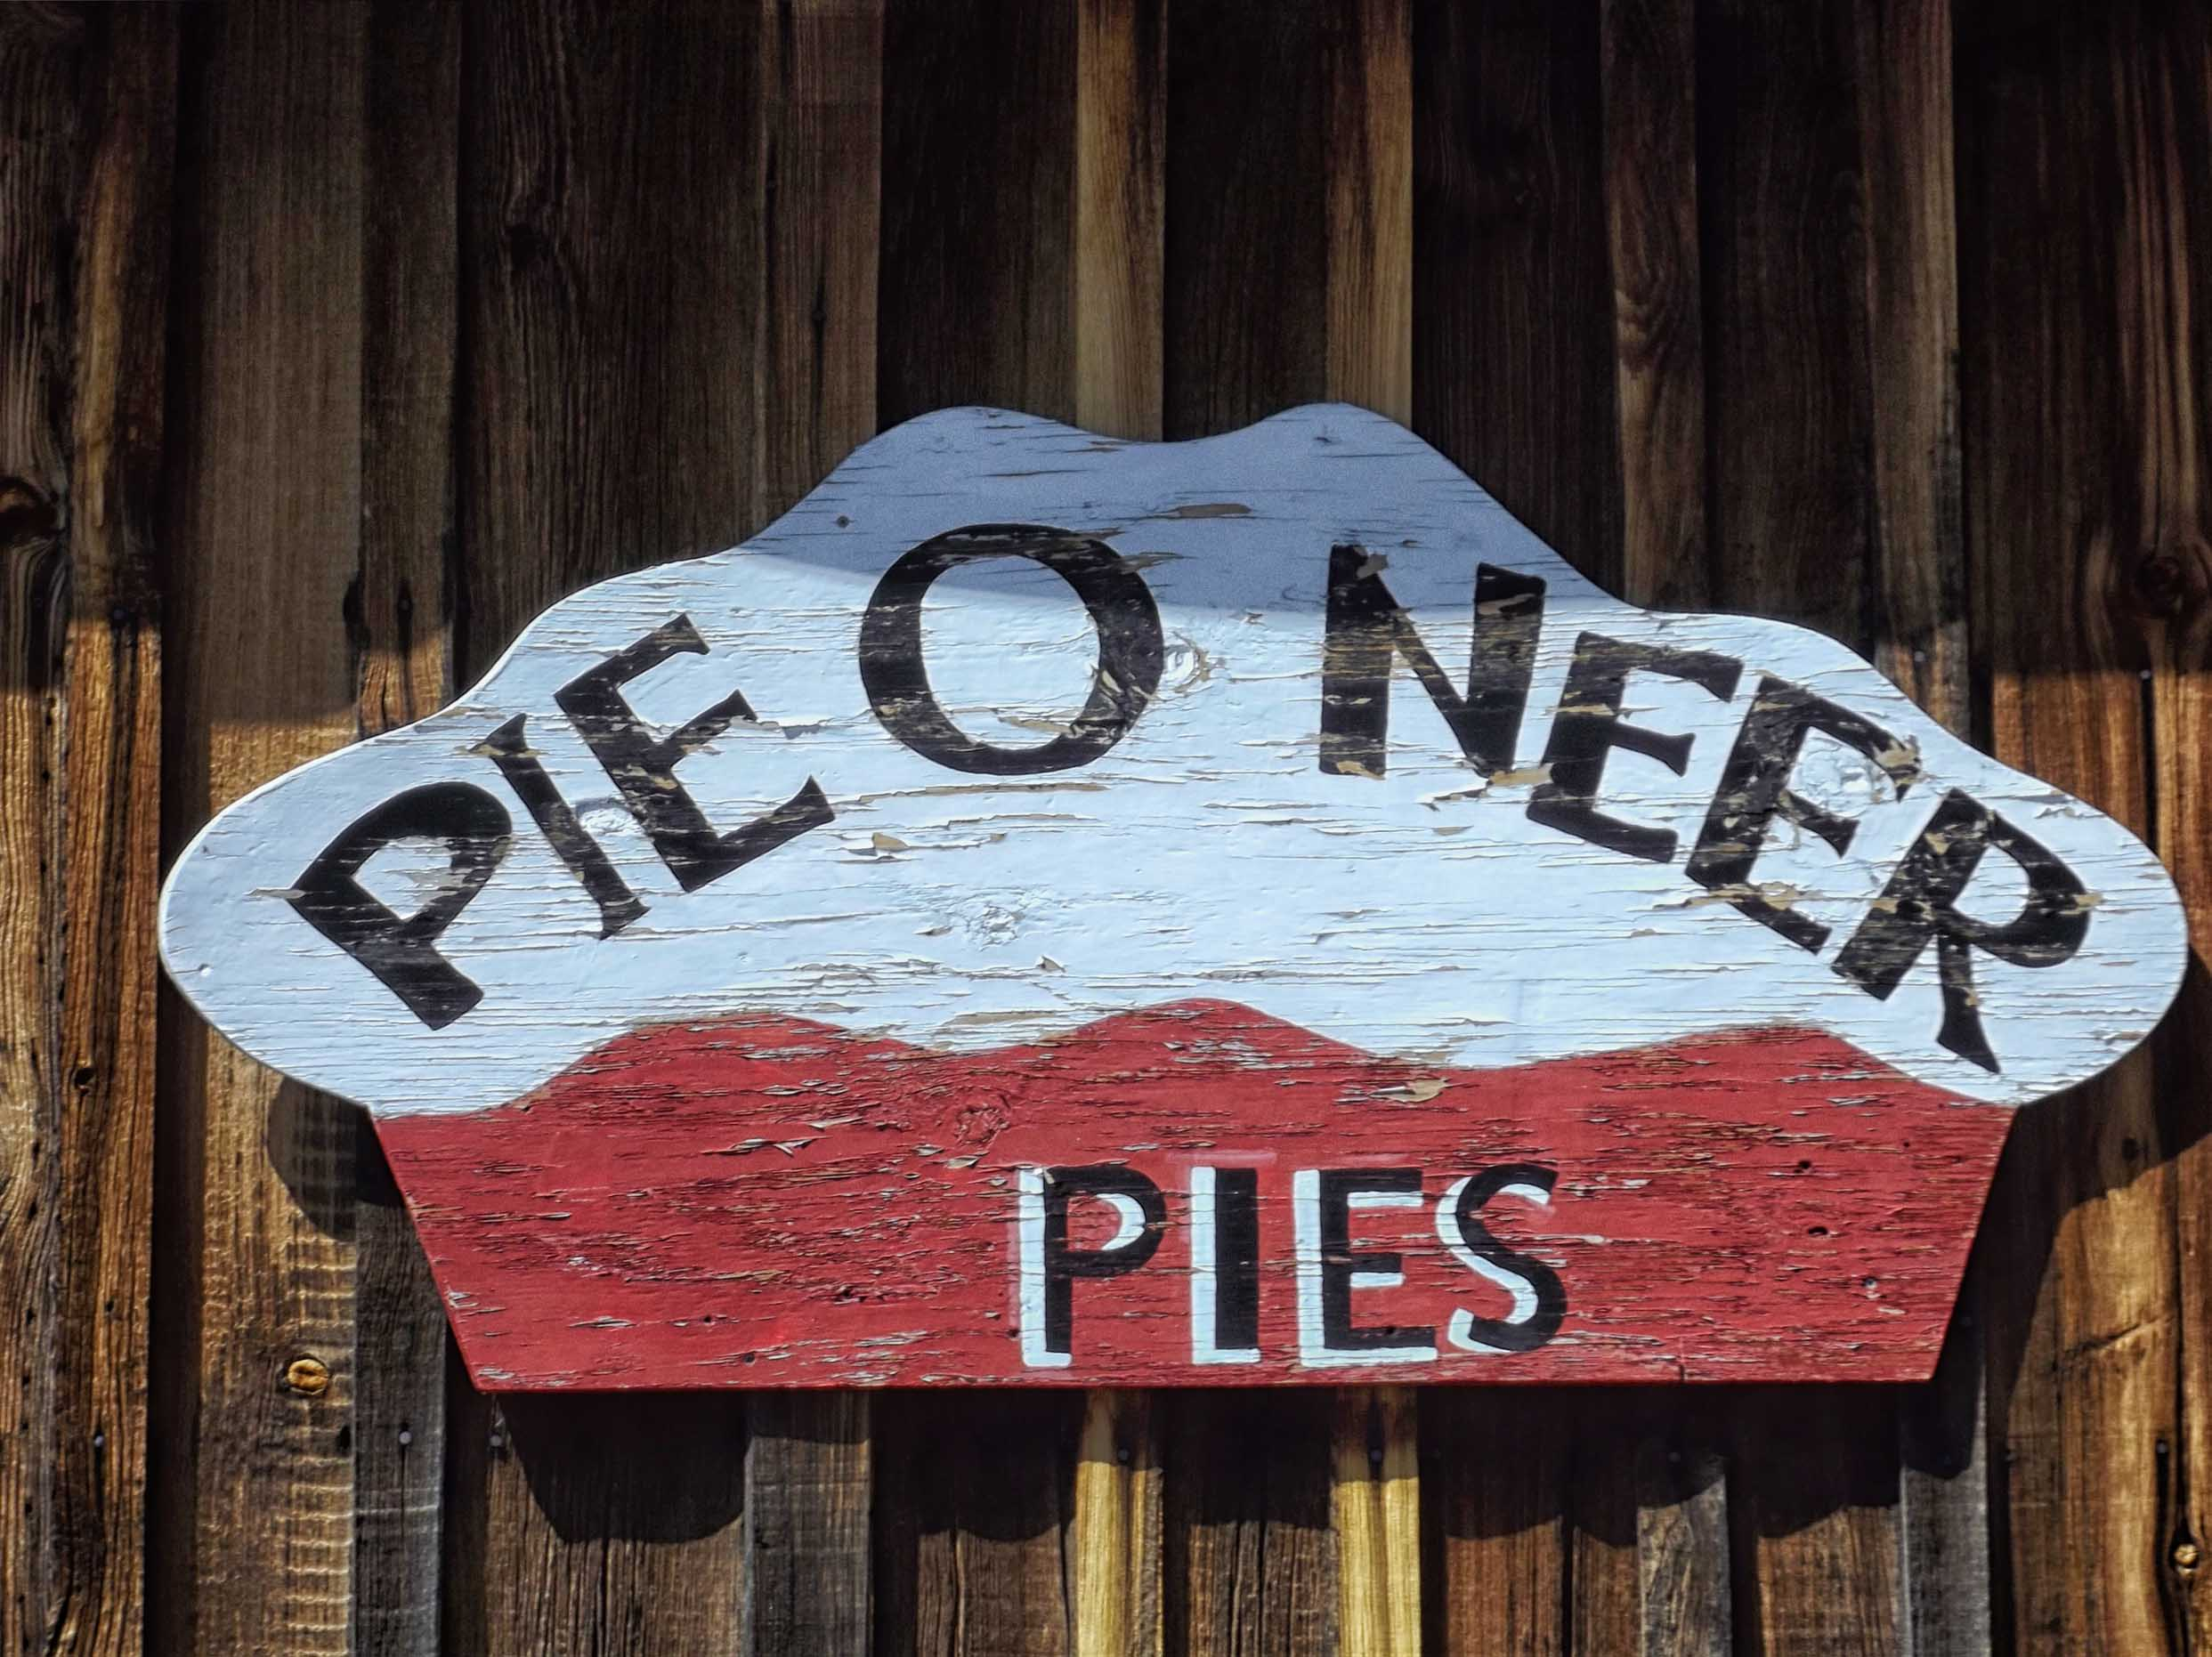 Sign advertising pies